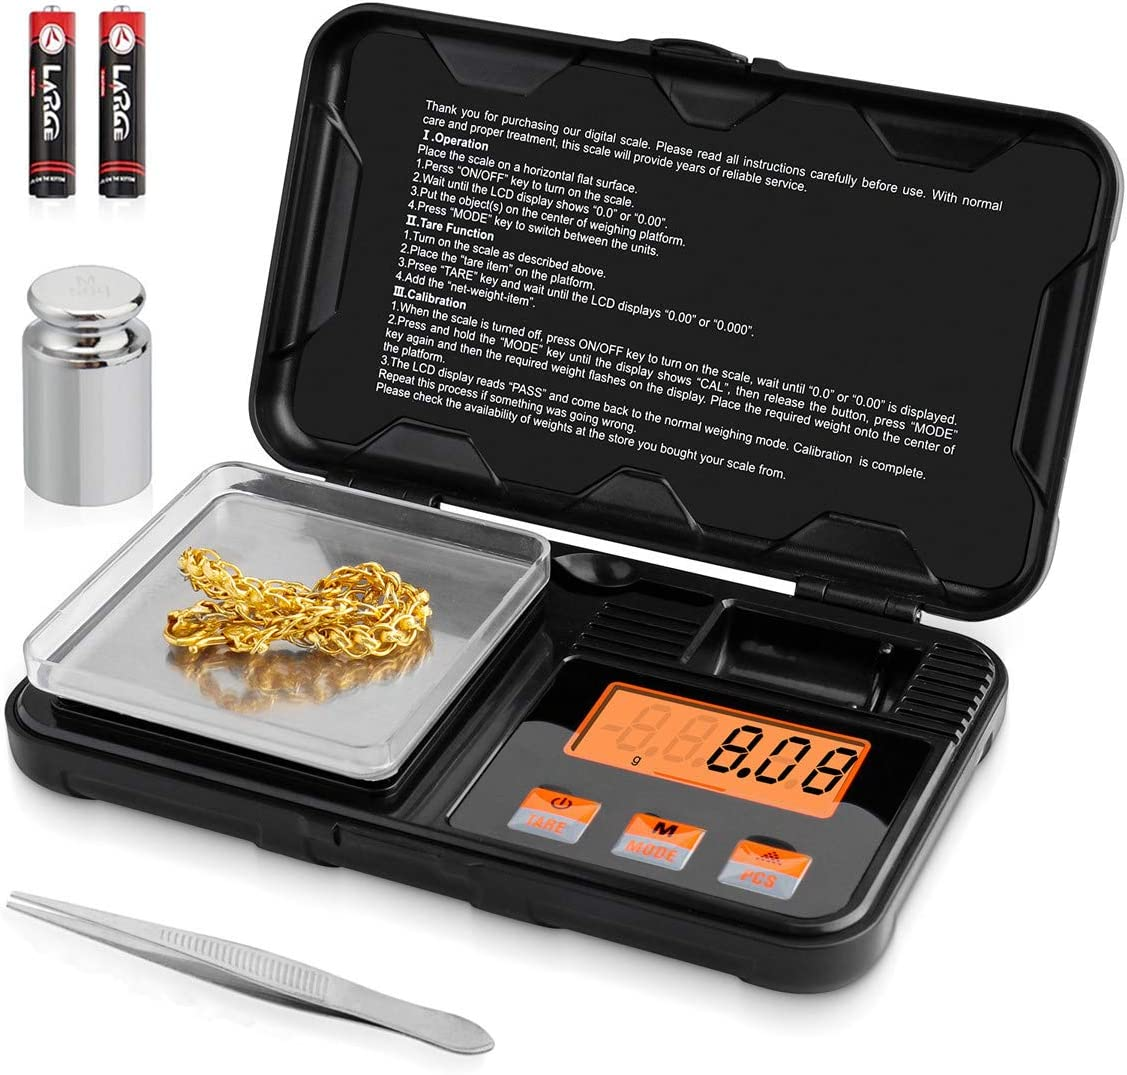 Digital Scale Mini Pocket Scale 200g x 0.01g Gram Scale with 6 Units Conversion, 50g Calibration Weight, LCD Back-Lit Display, Use for Jewelry/Medicine/Food/Powder(Tweezers Tray Battery Included)